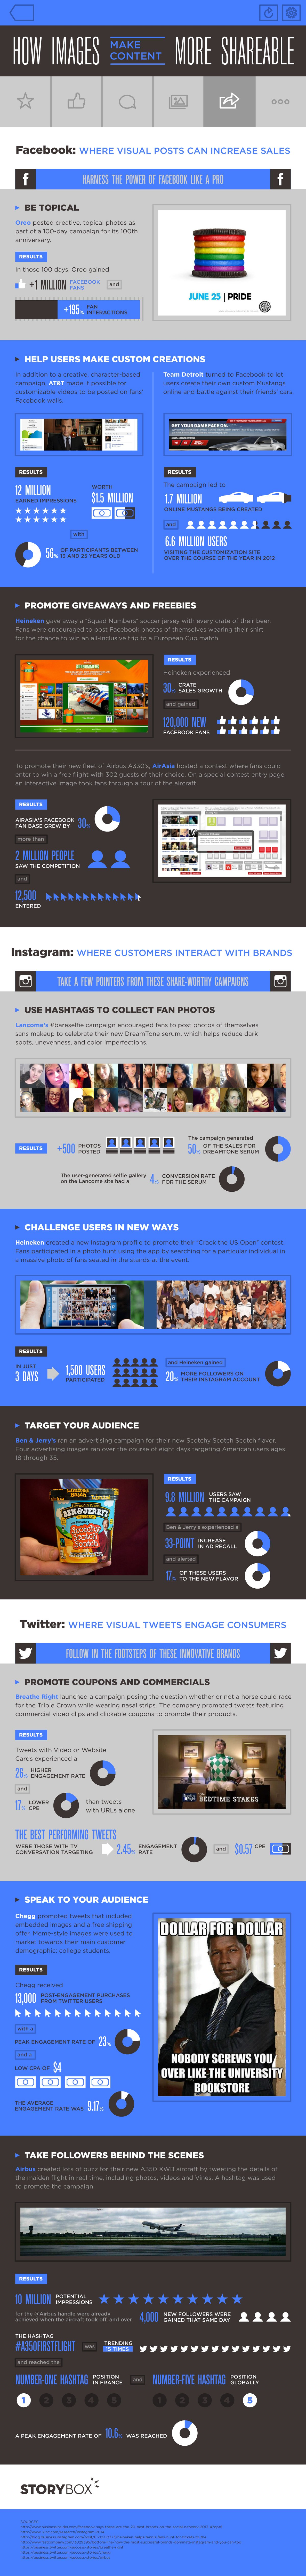 Make Your Social Content More Shareable with Images #Infographic